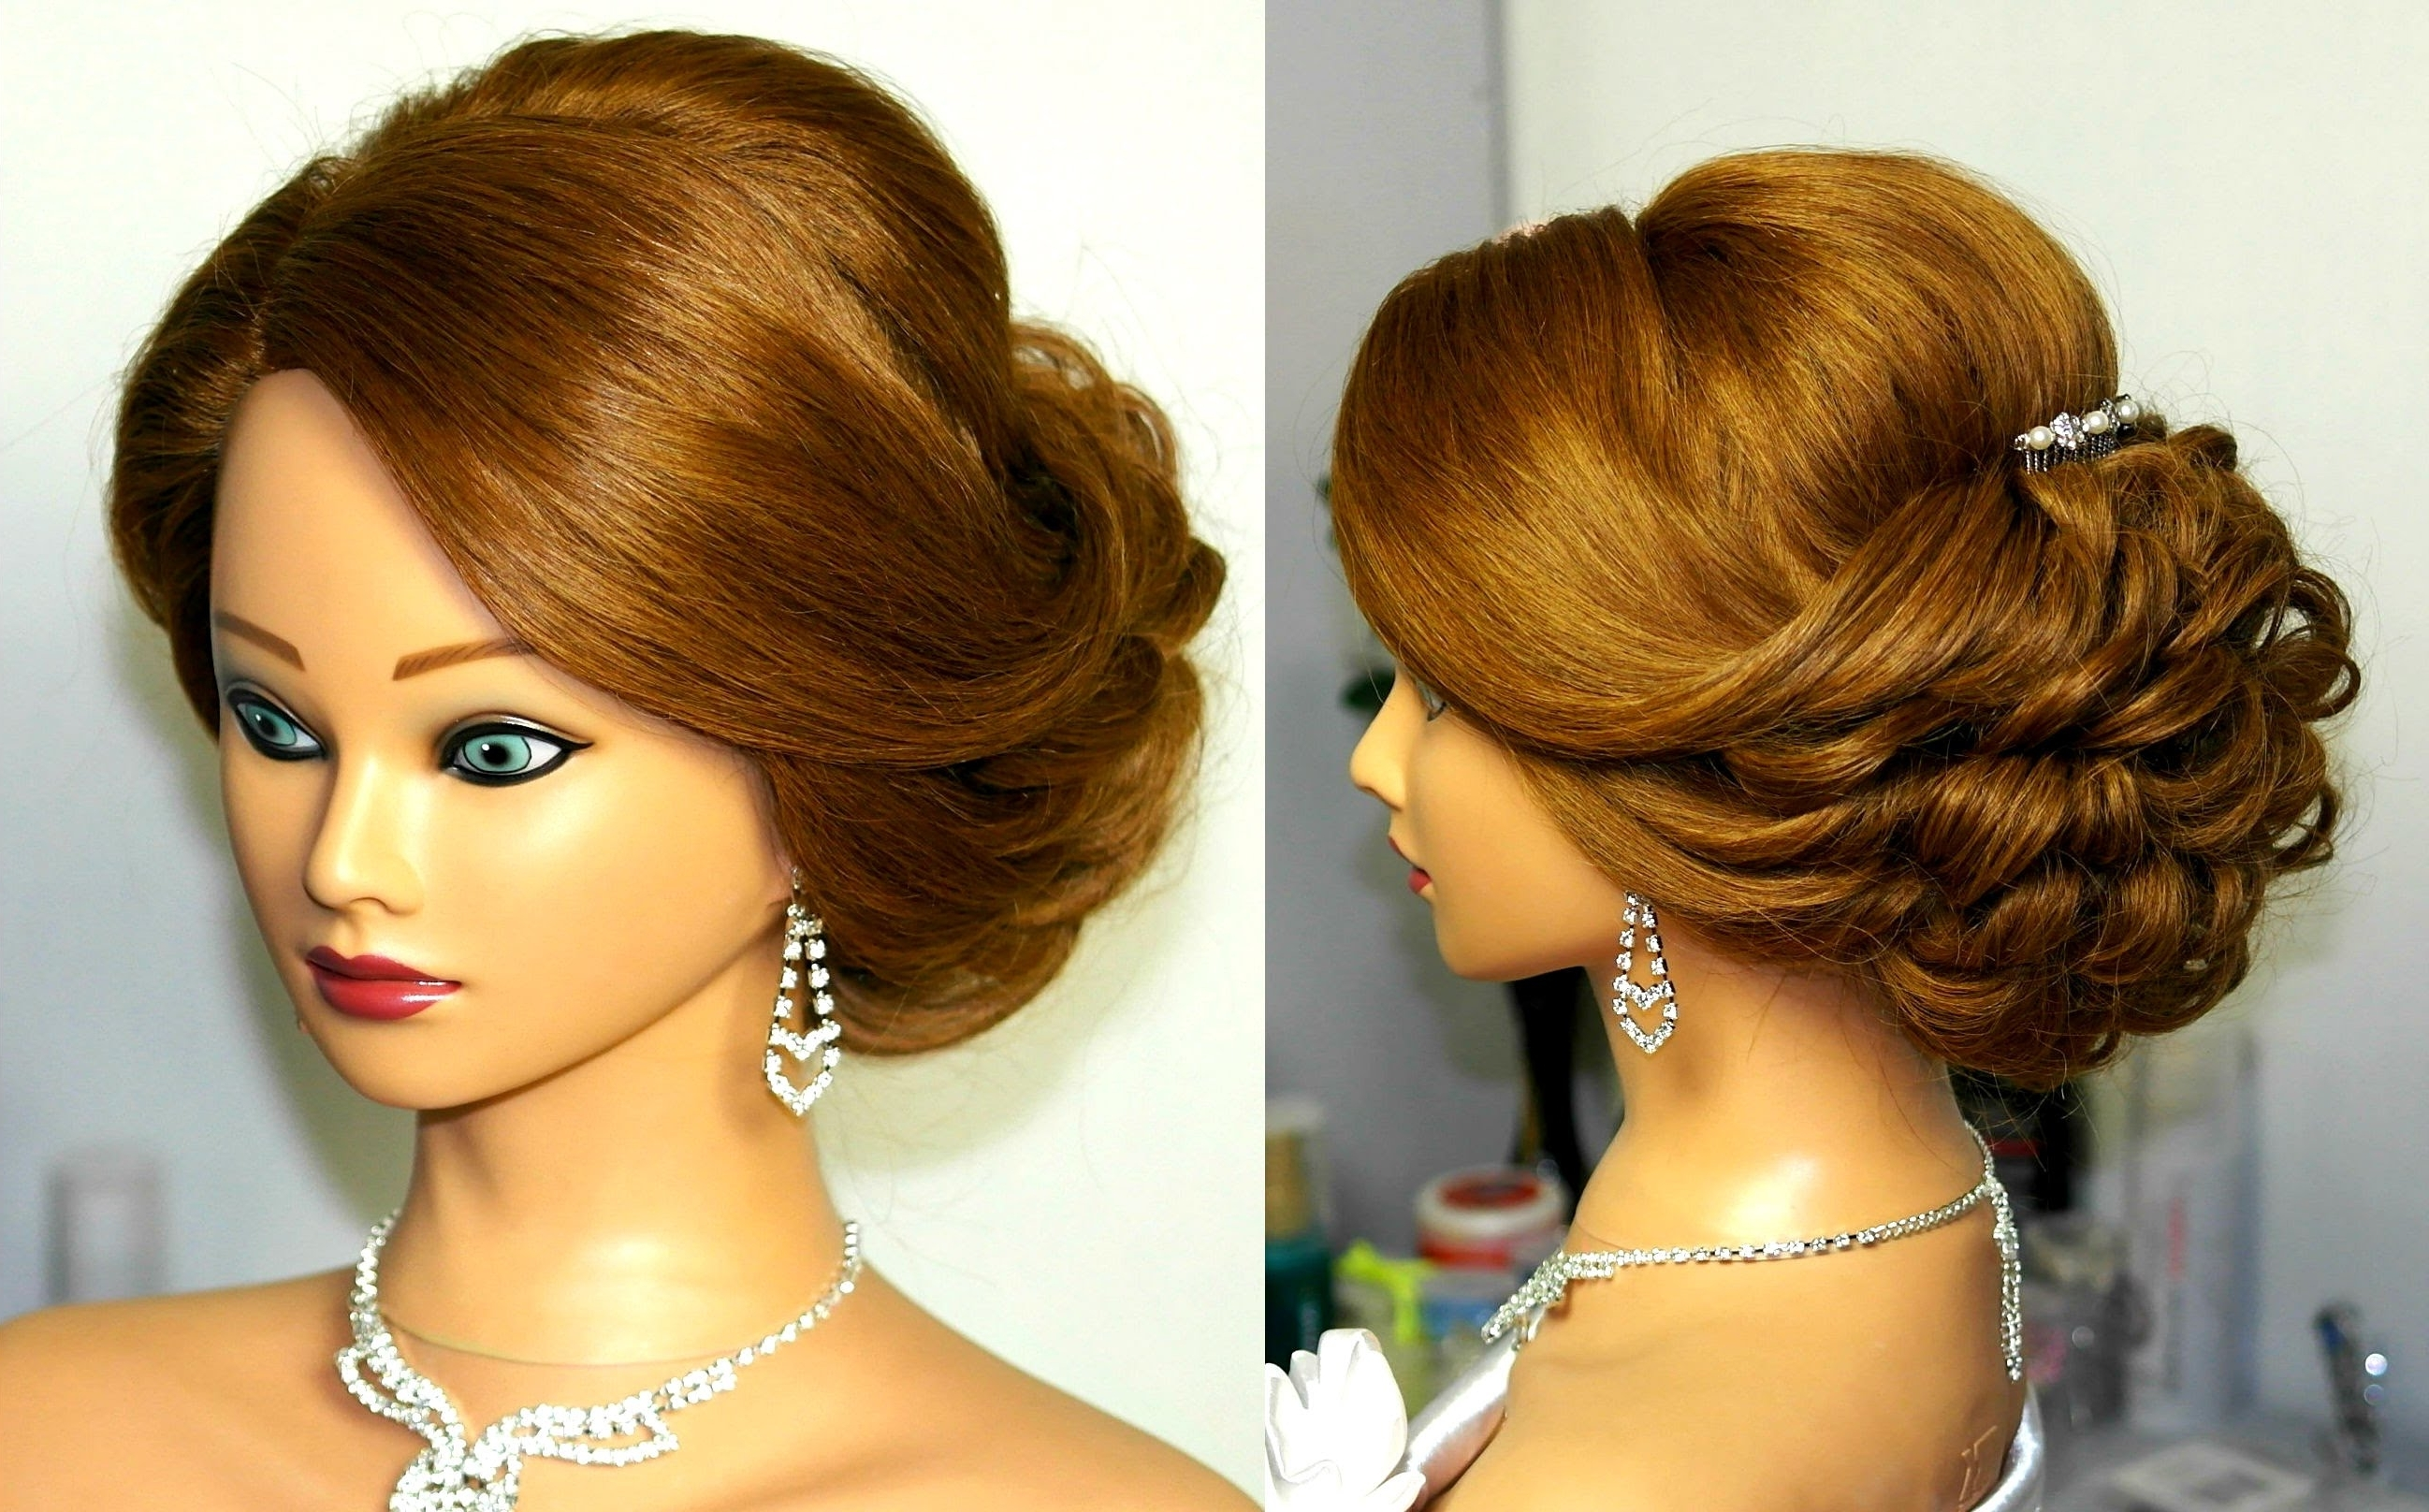 Widely Used Hairstyles For Long Hair For A Wedding Party Within Wedding Party Hairstyles For Long Hair – Hairstyle For Women & Man (View 7 of 15)